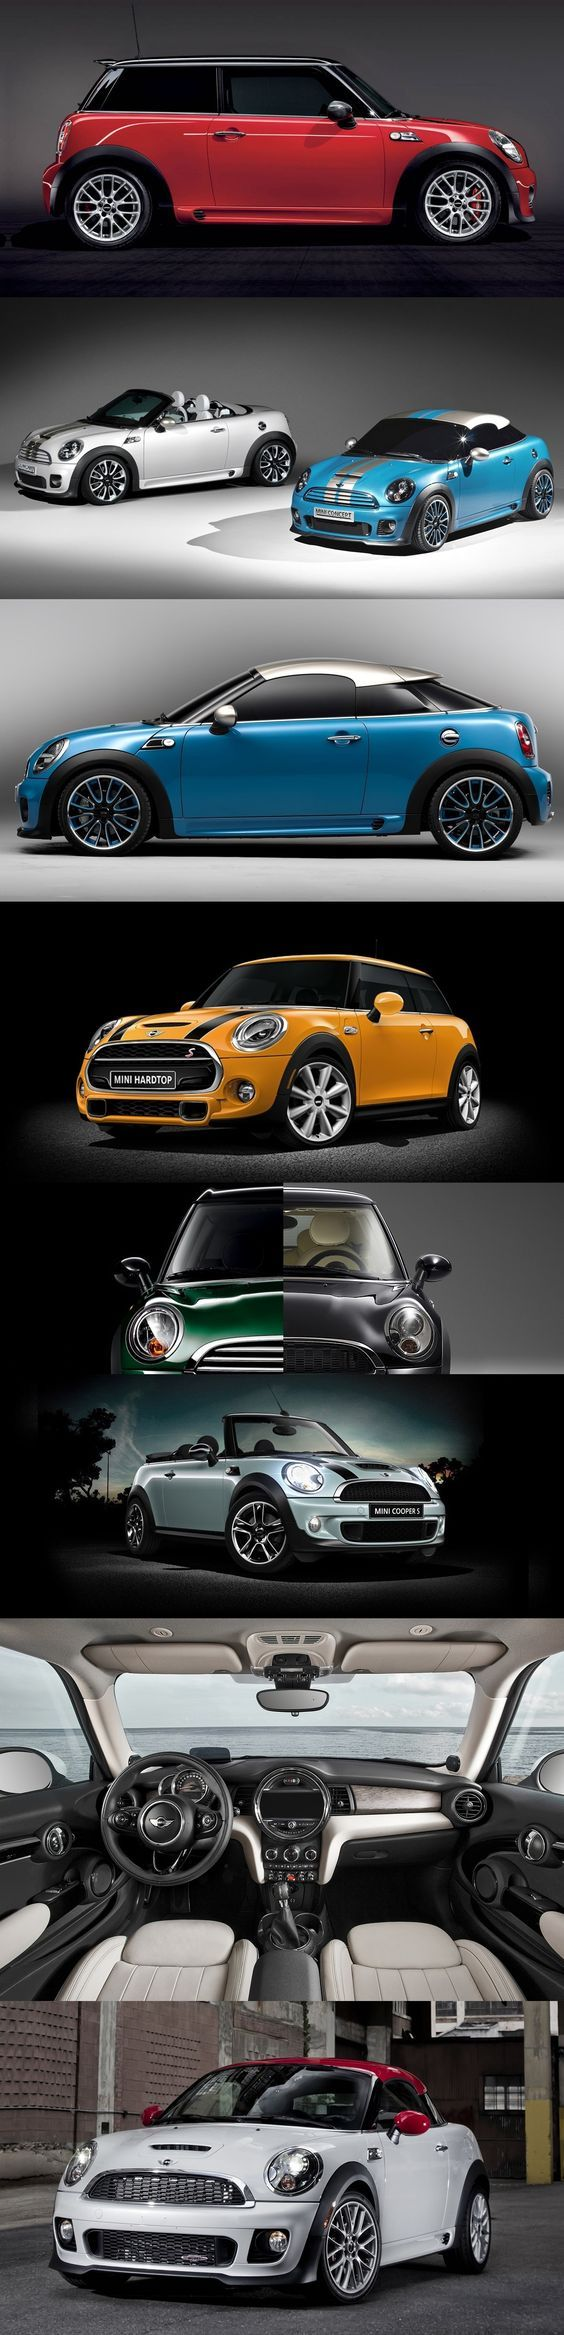 MINI Coopers For Sale - Welcome to RuelSpot.com, we have a large inventory of new and used MINI Coopers on sale; including the MINI Hardtop 2 Door, Hardtop 4 Door, Countryman, Paceman, Convertible, Coupe, John Cooper Works and  the nimble and swift Mini Cooper Roadster. http://www.ruelspot.com/mini-cooper/best-in-class-new-and-used-mini-cooper-for-sale/ #MINICooperForSale #MiniCooper #MINI: